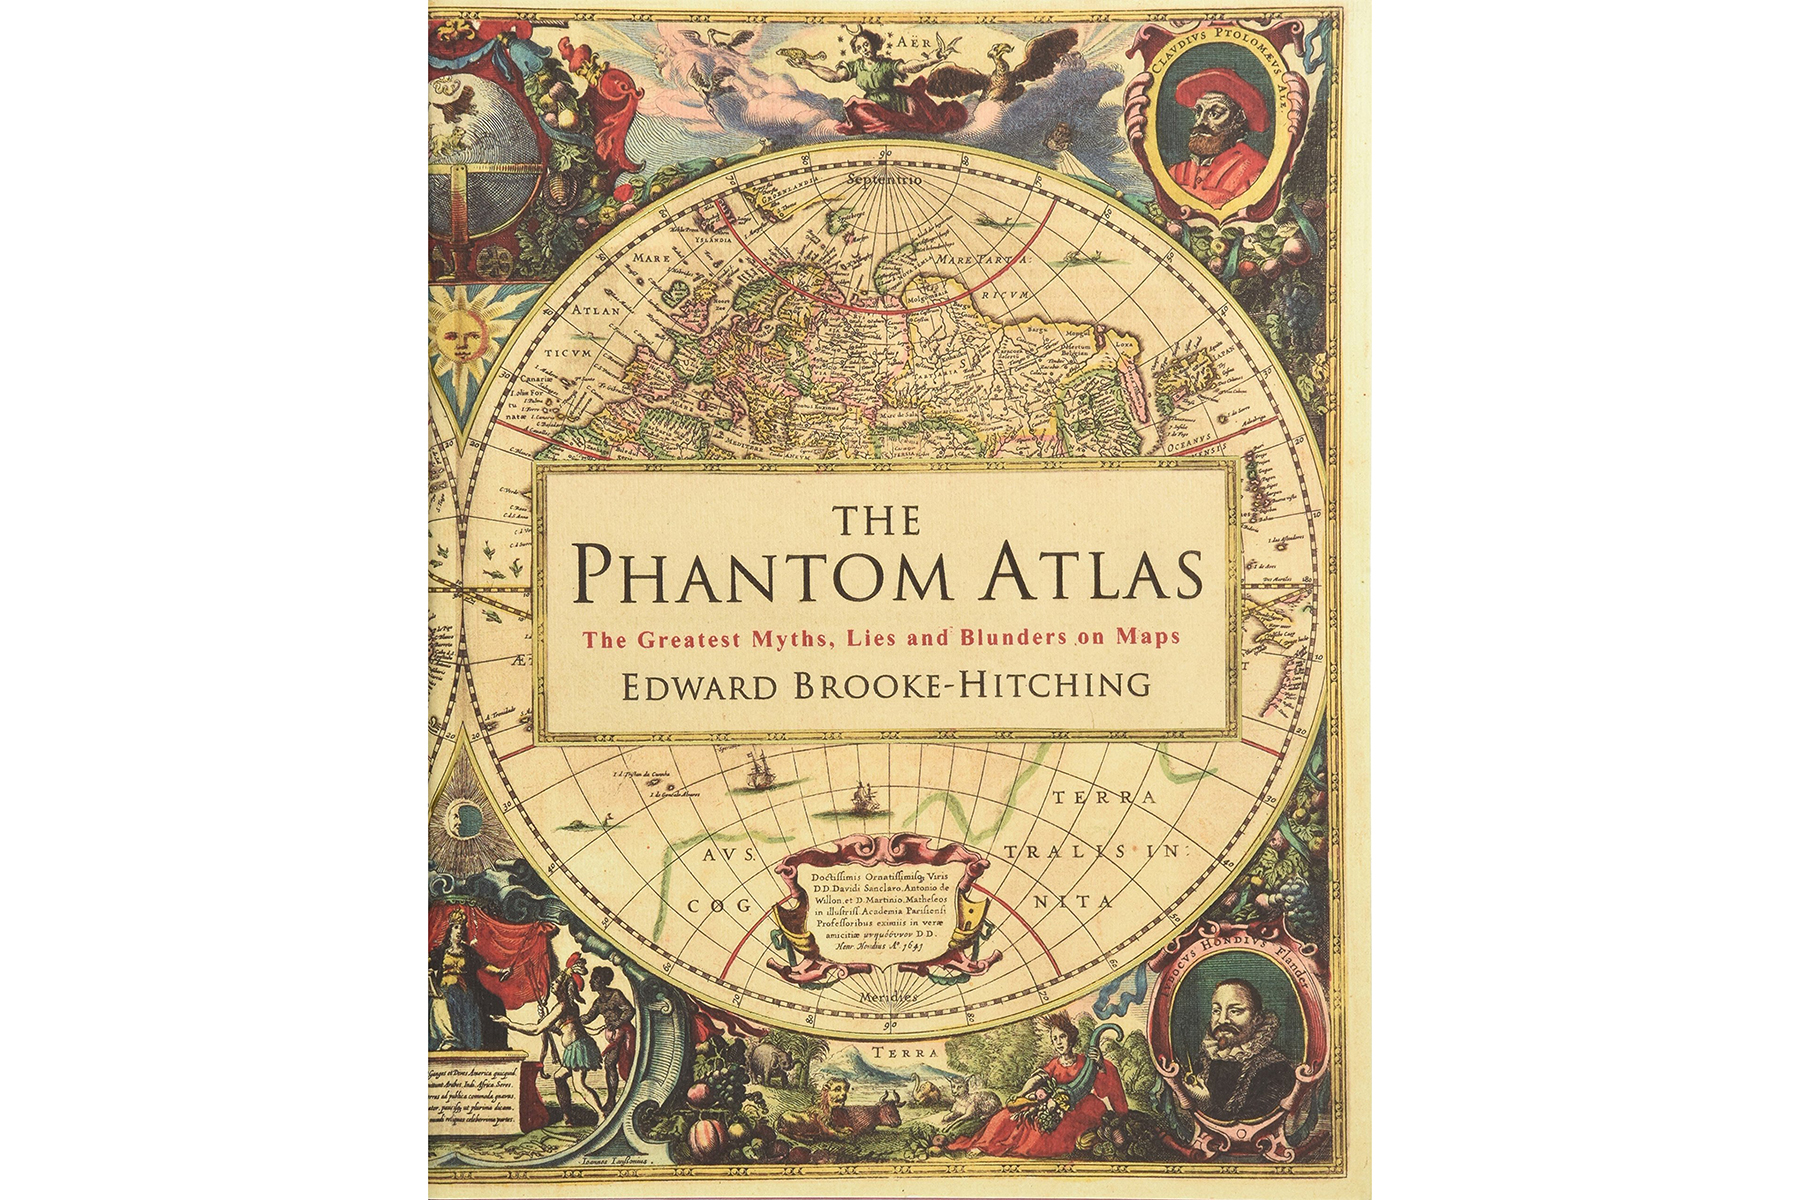 Cover of The Phantom Atlas, by Edward Brooke-Hitching